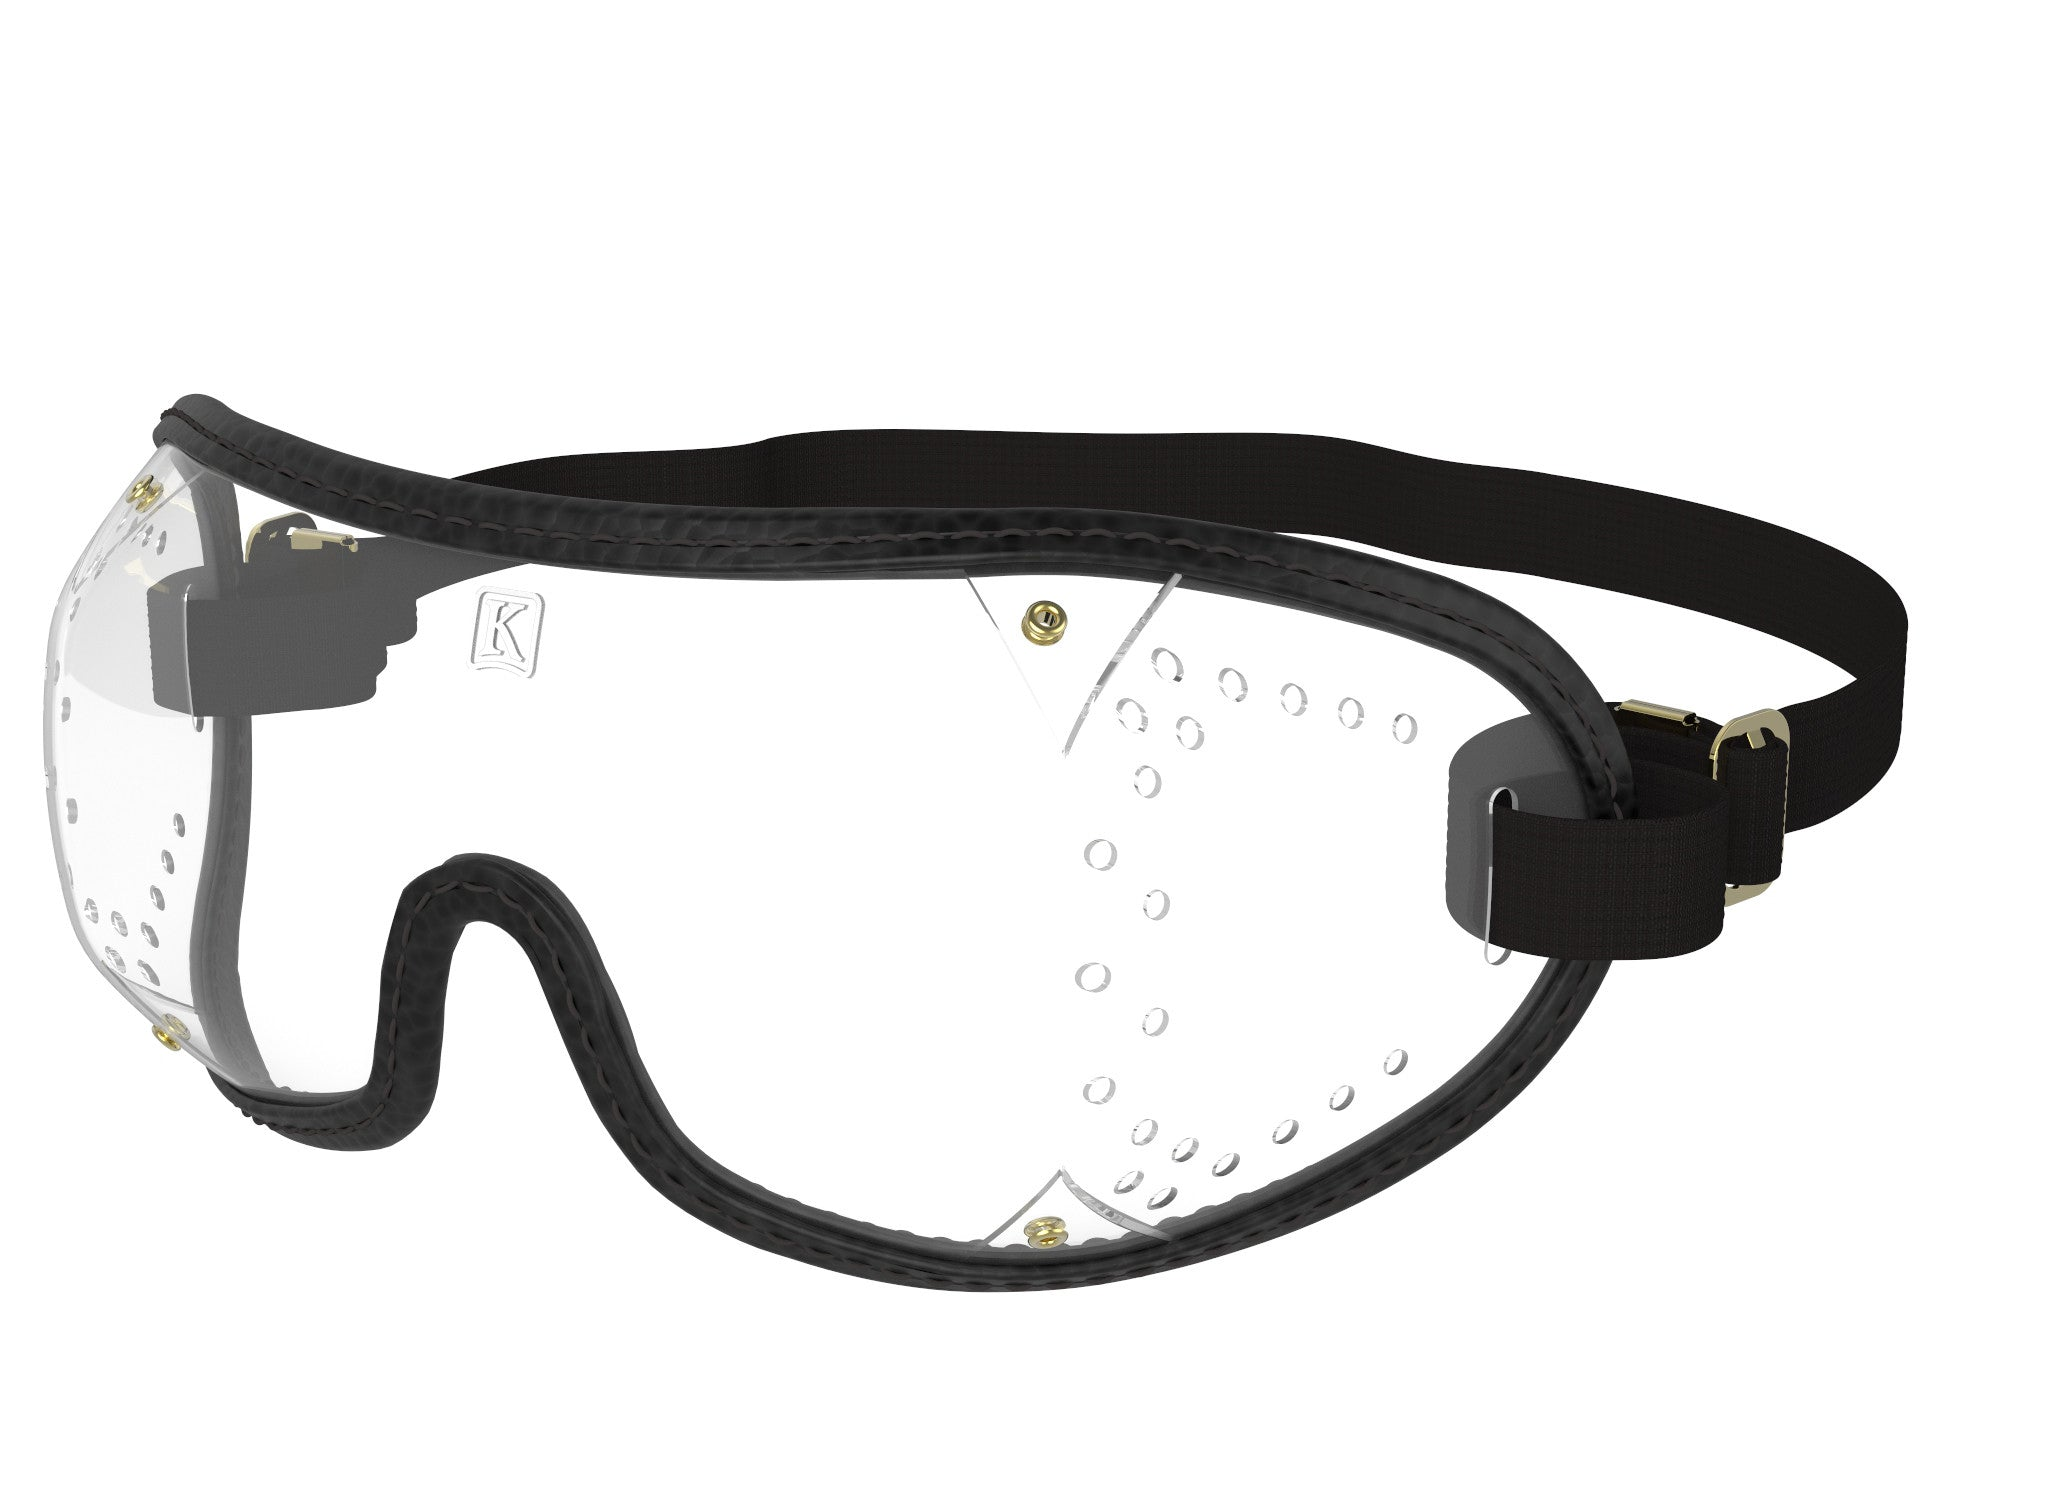 Cycling Goggles Protection From Cold Wind Kroop S